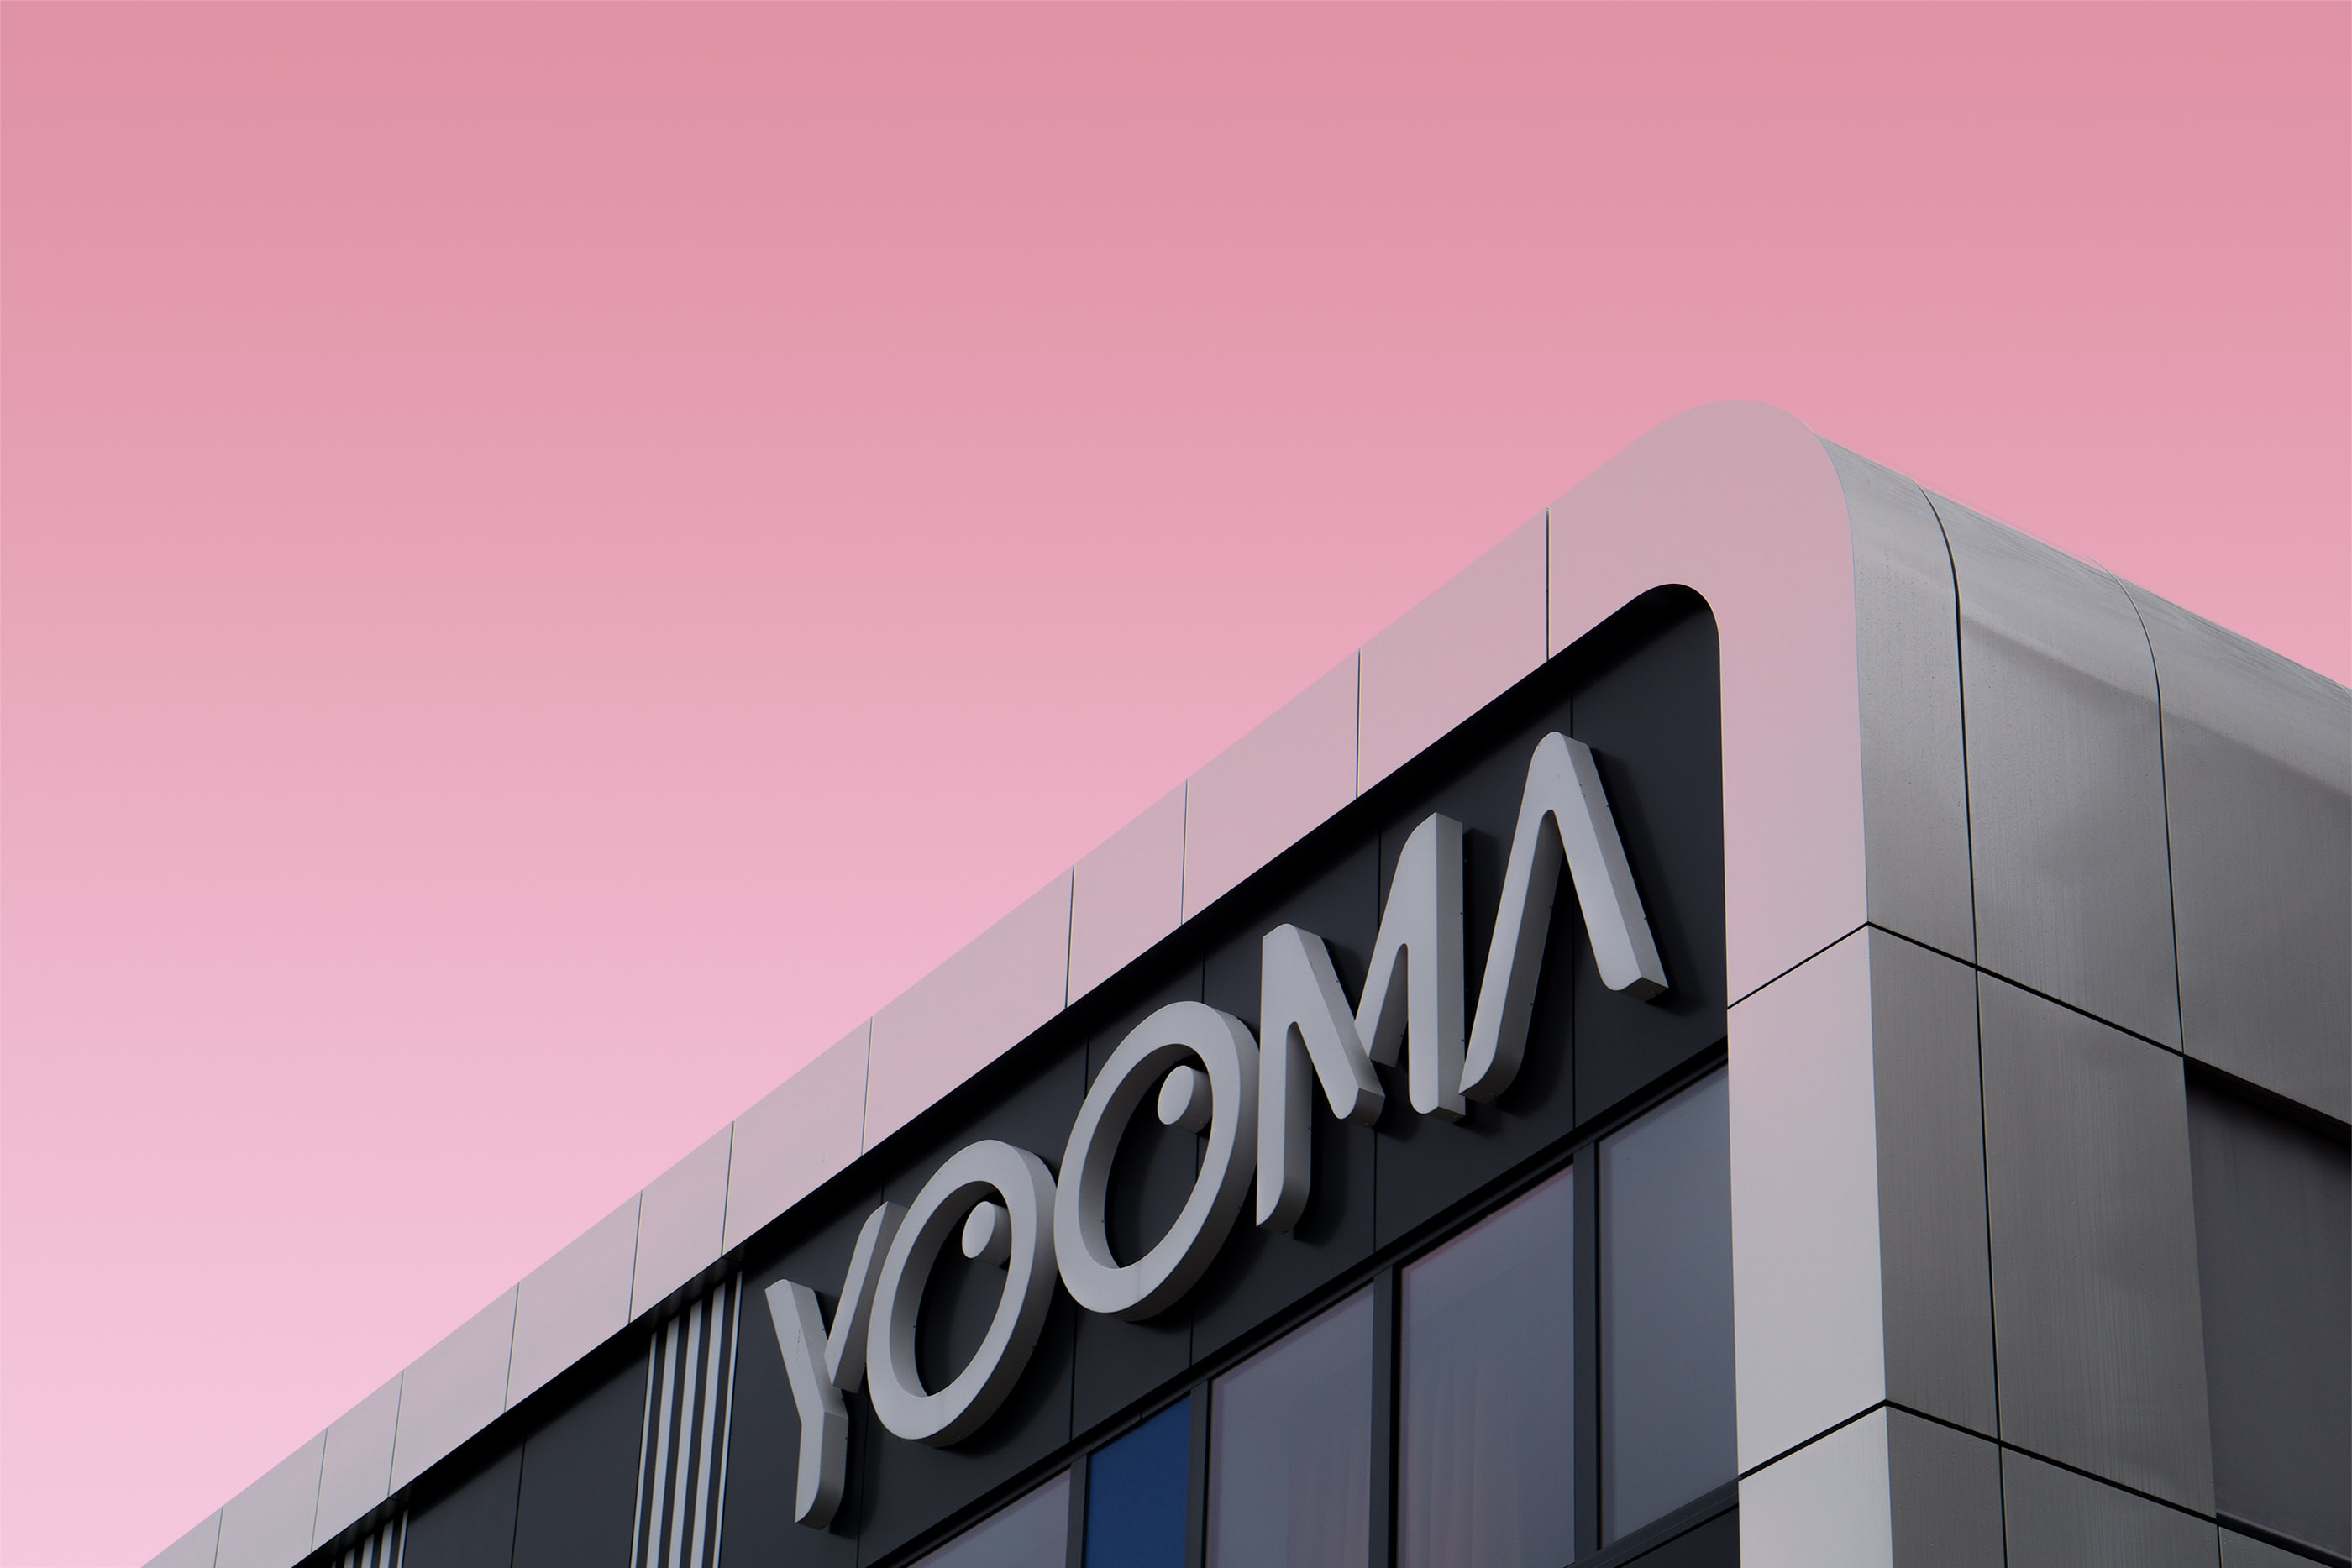 photo of Yooma building signage